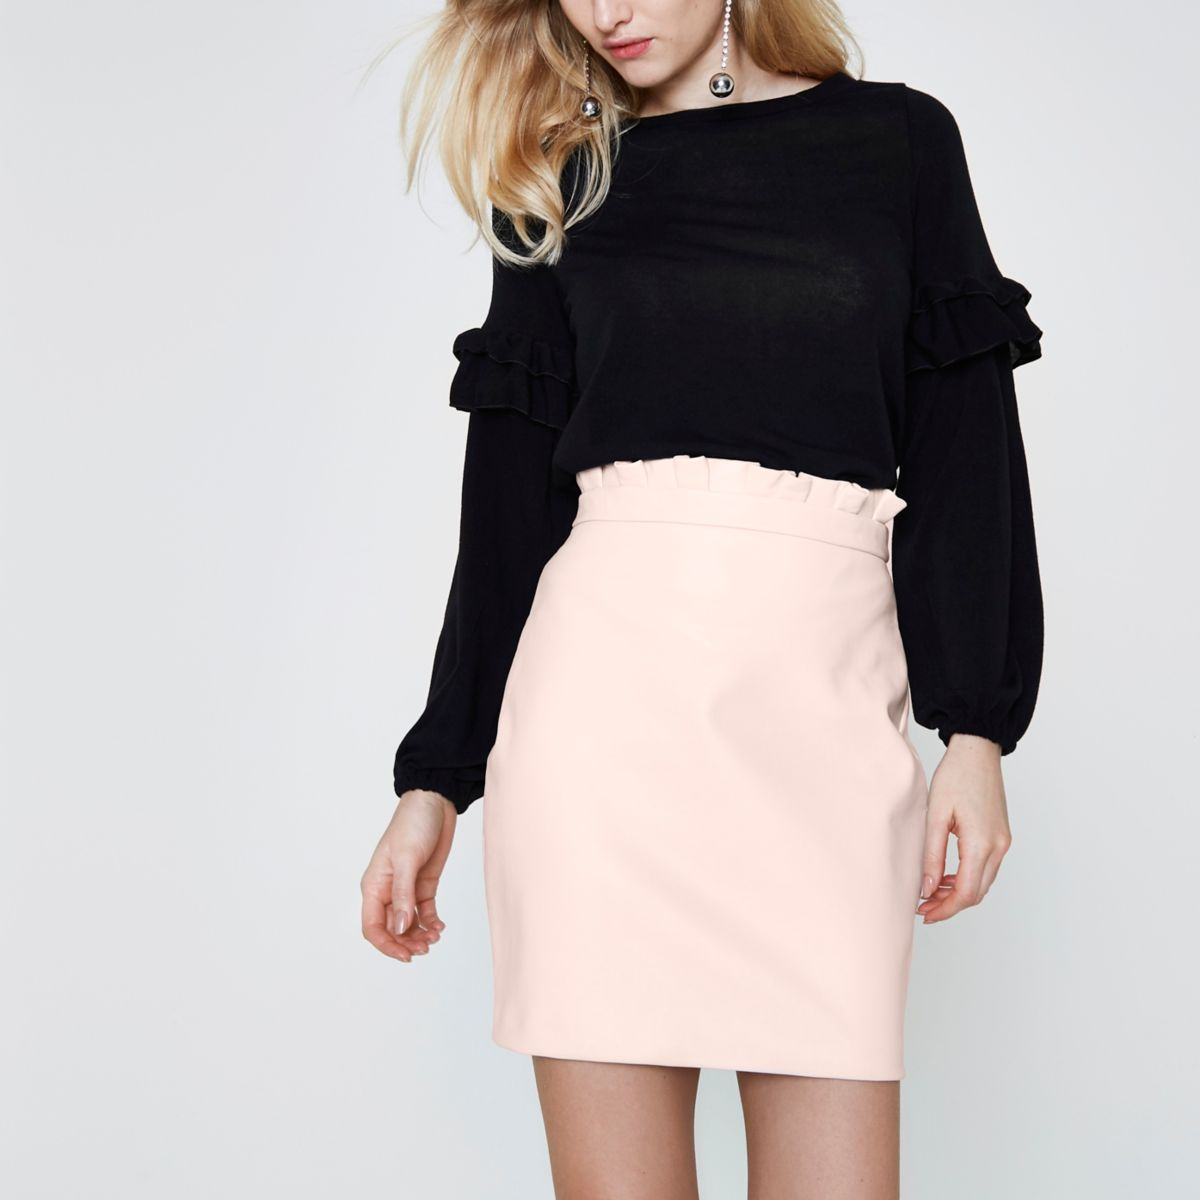 25b31e0be Light pink paperbag faux leather mini skirt £15.00 | River Island in ...